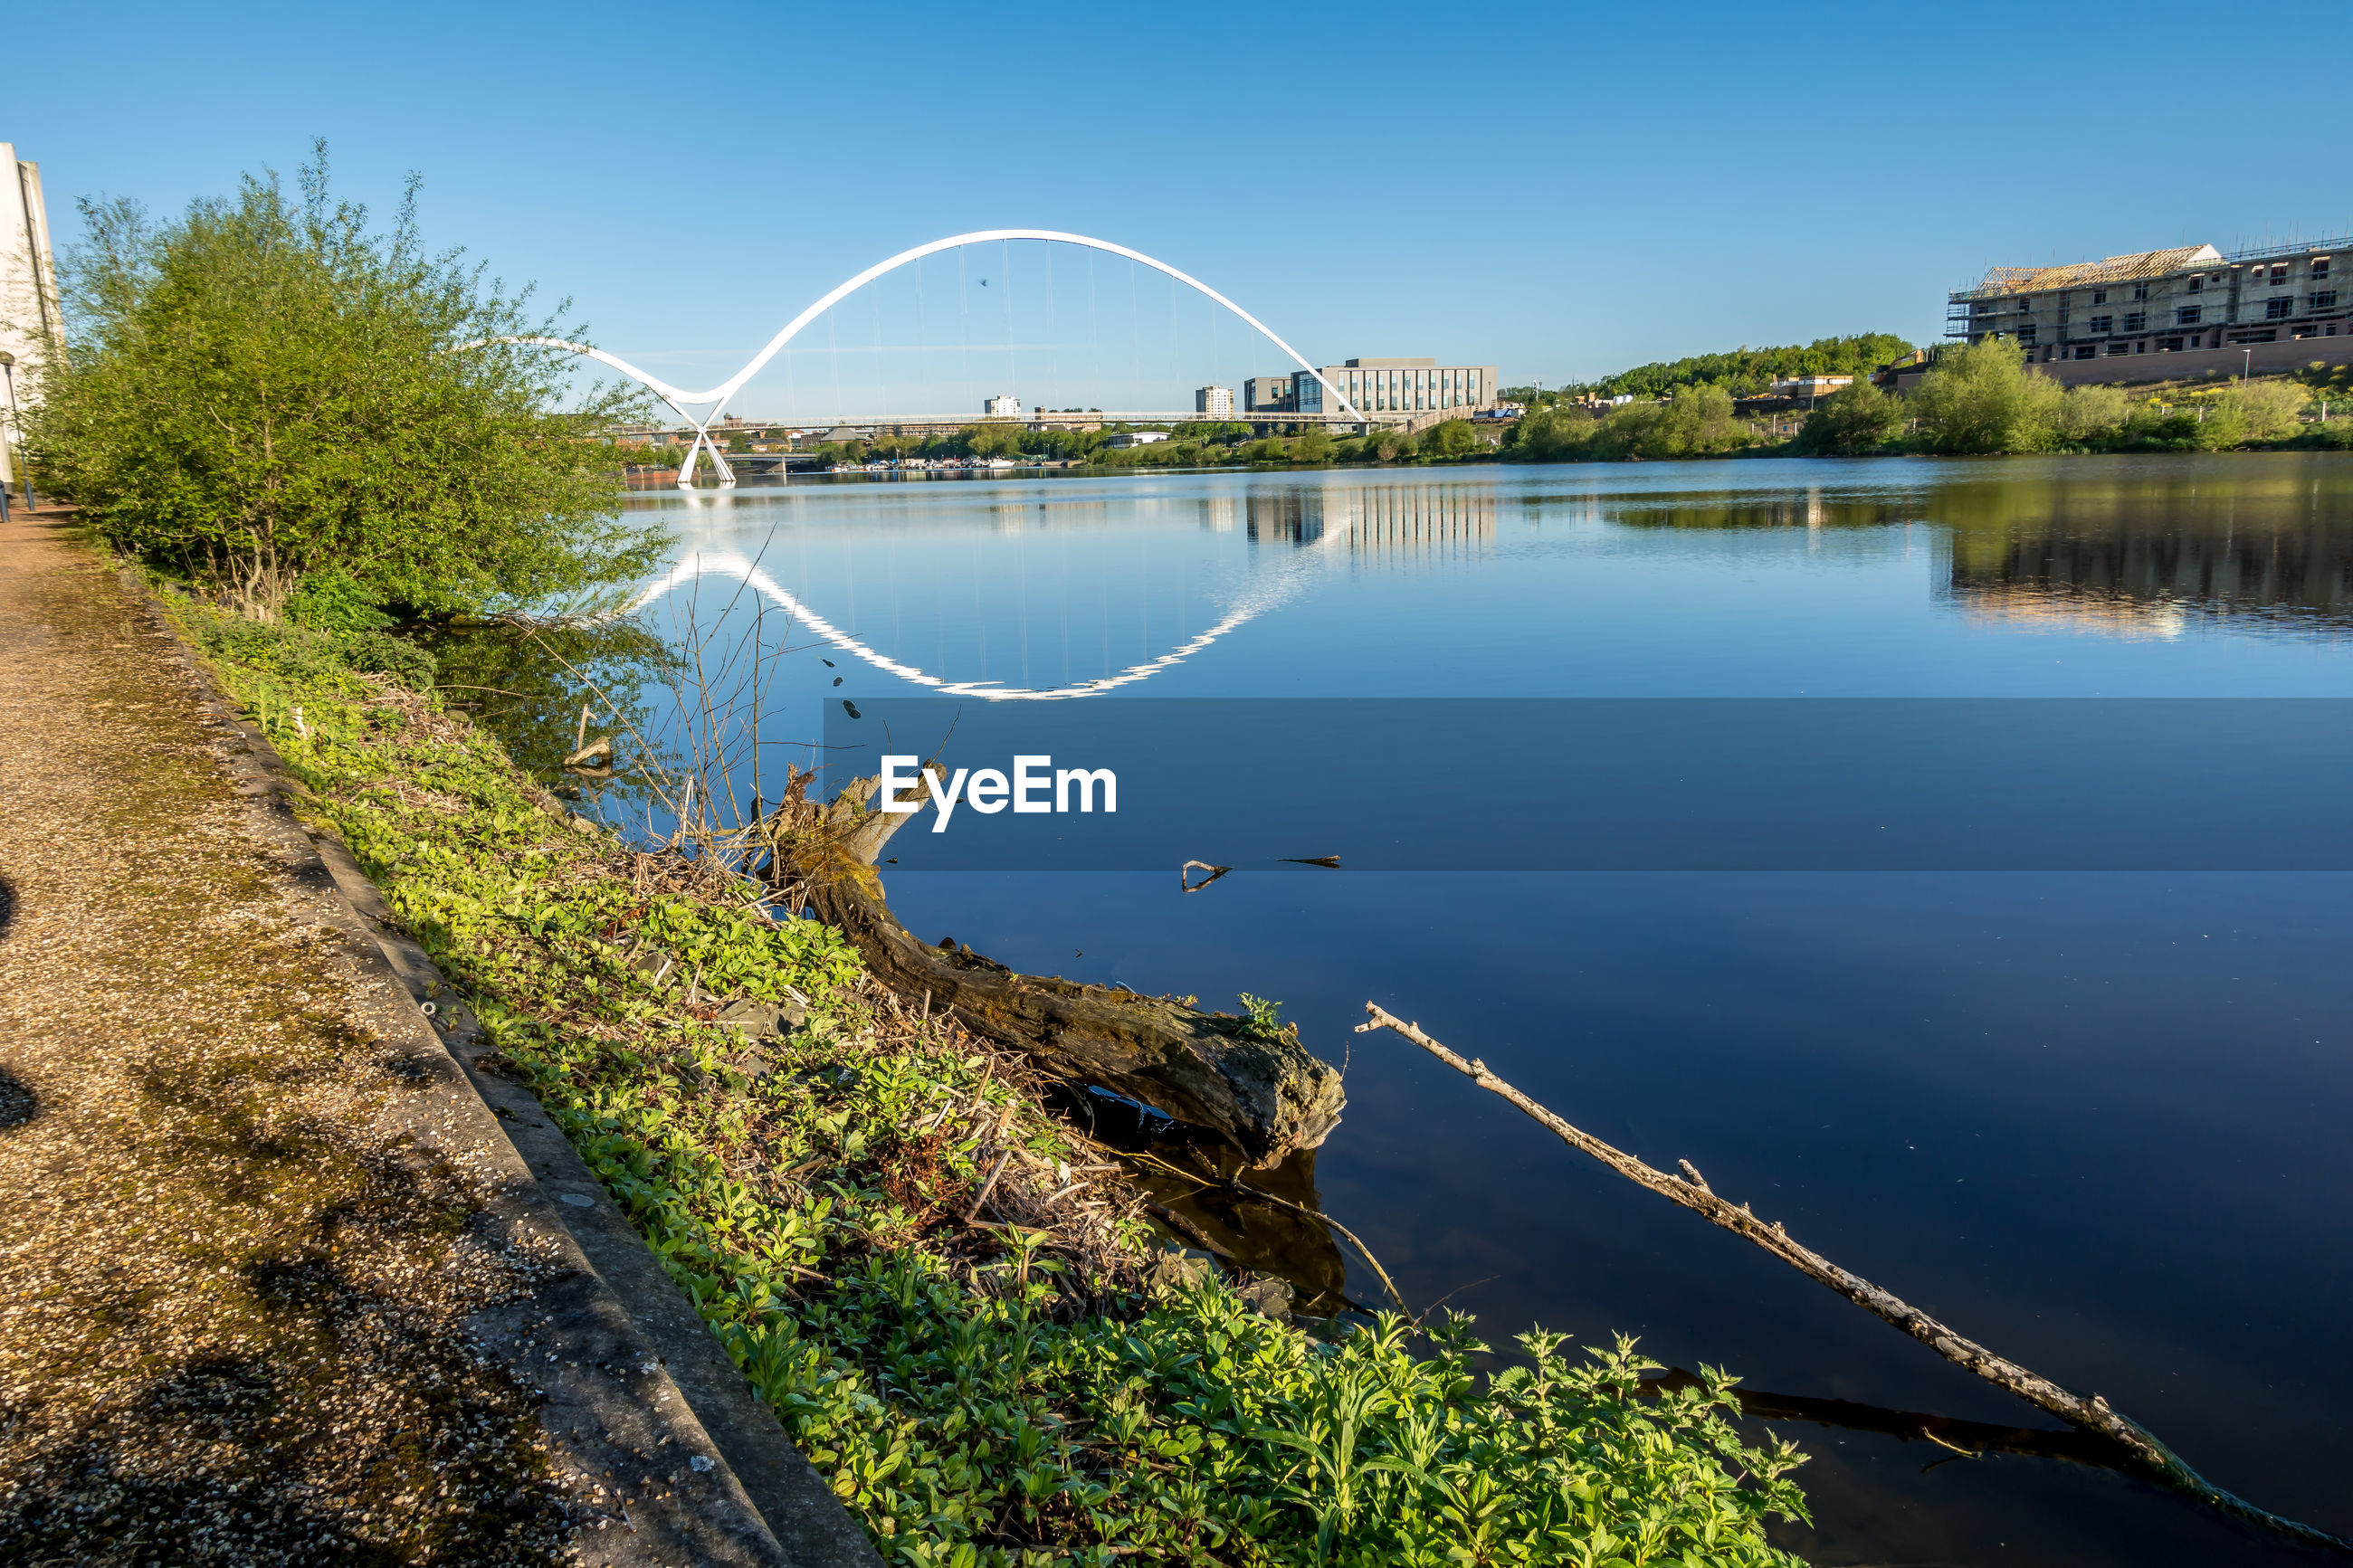 SCENIC VIEW OF LAKE AND BRIDGE AGAINST SKY